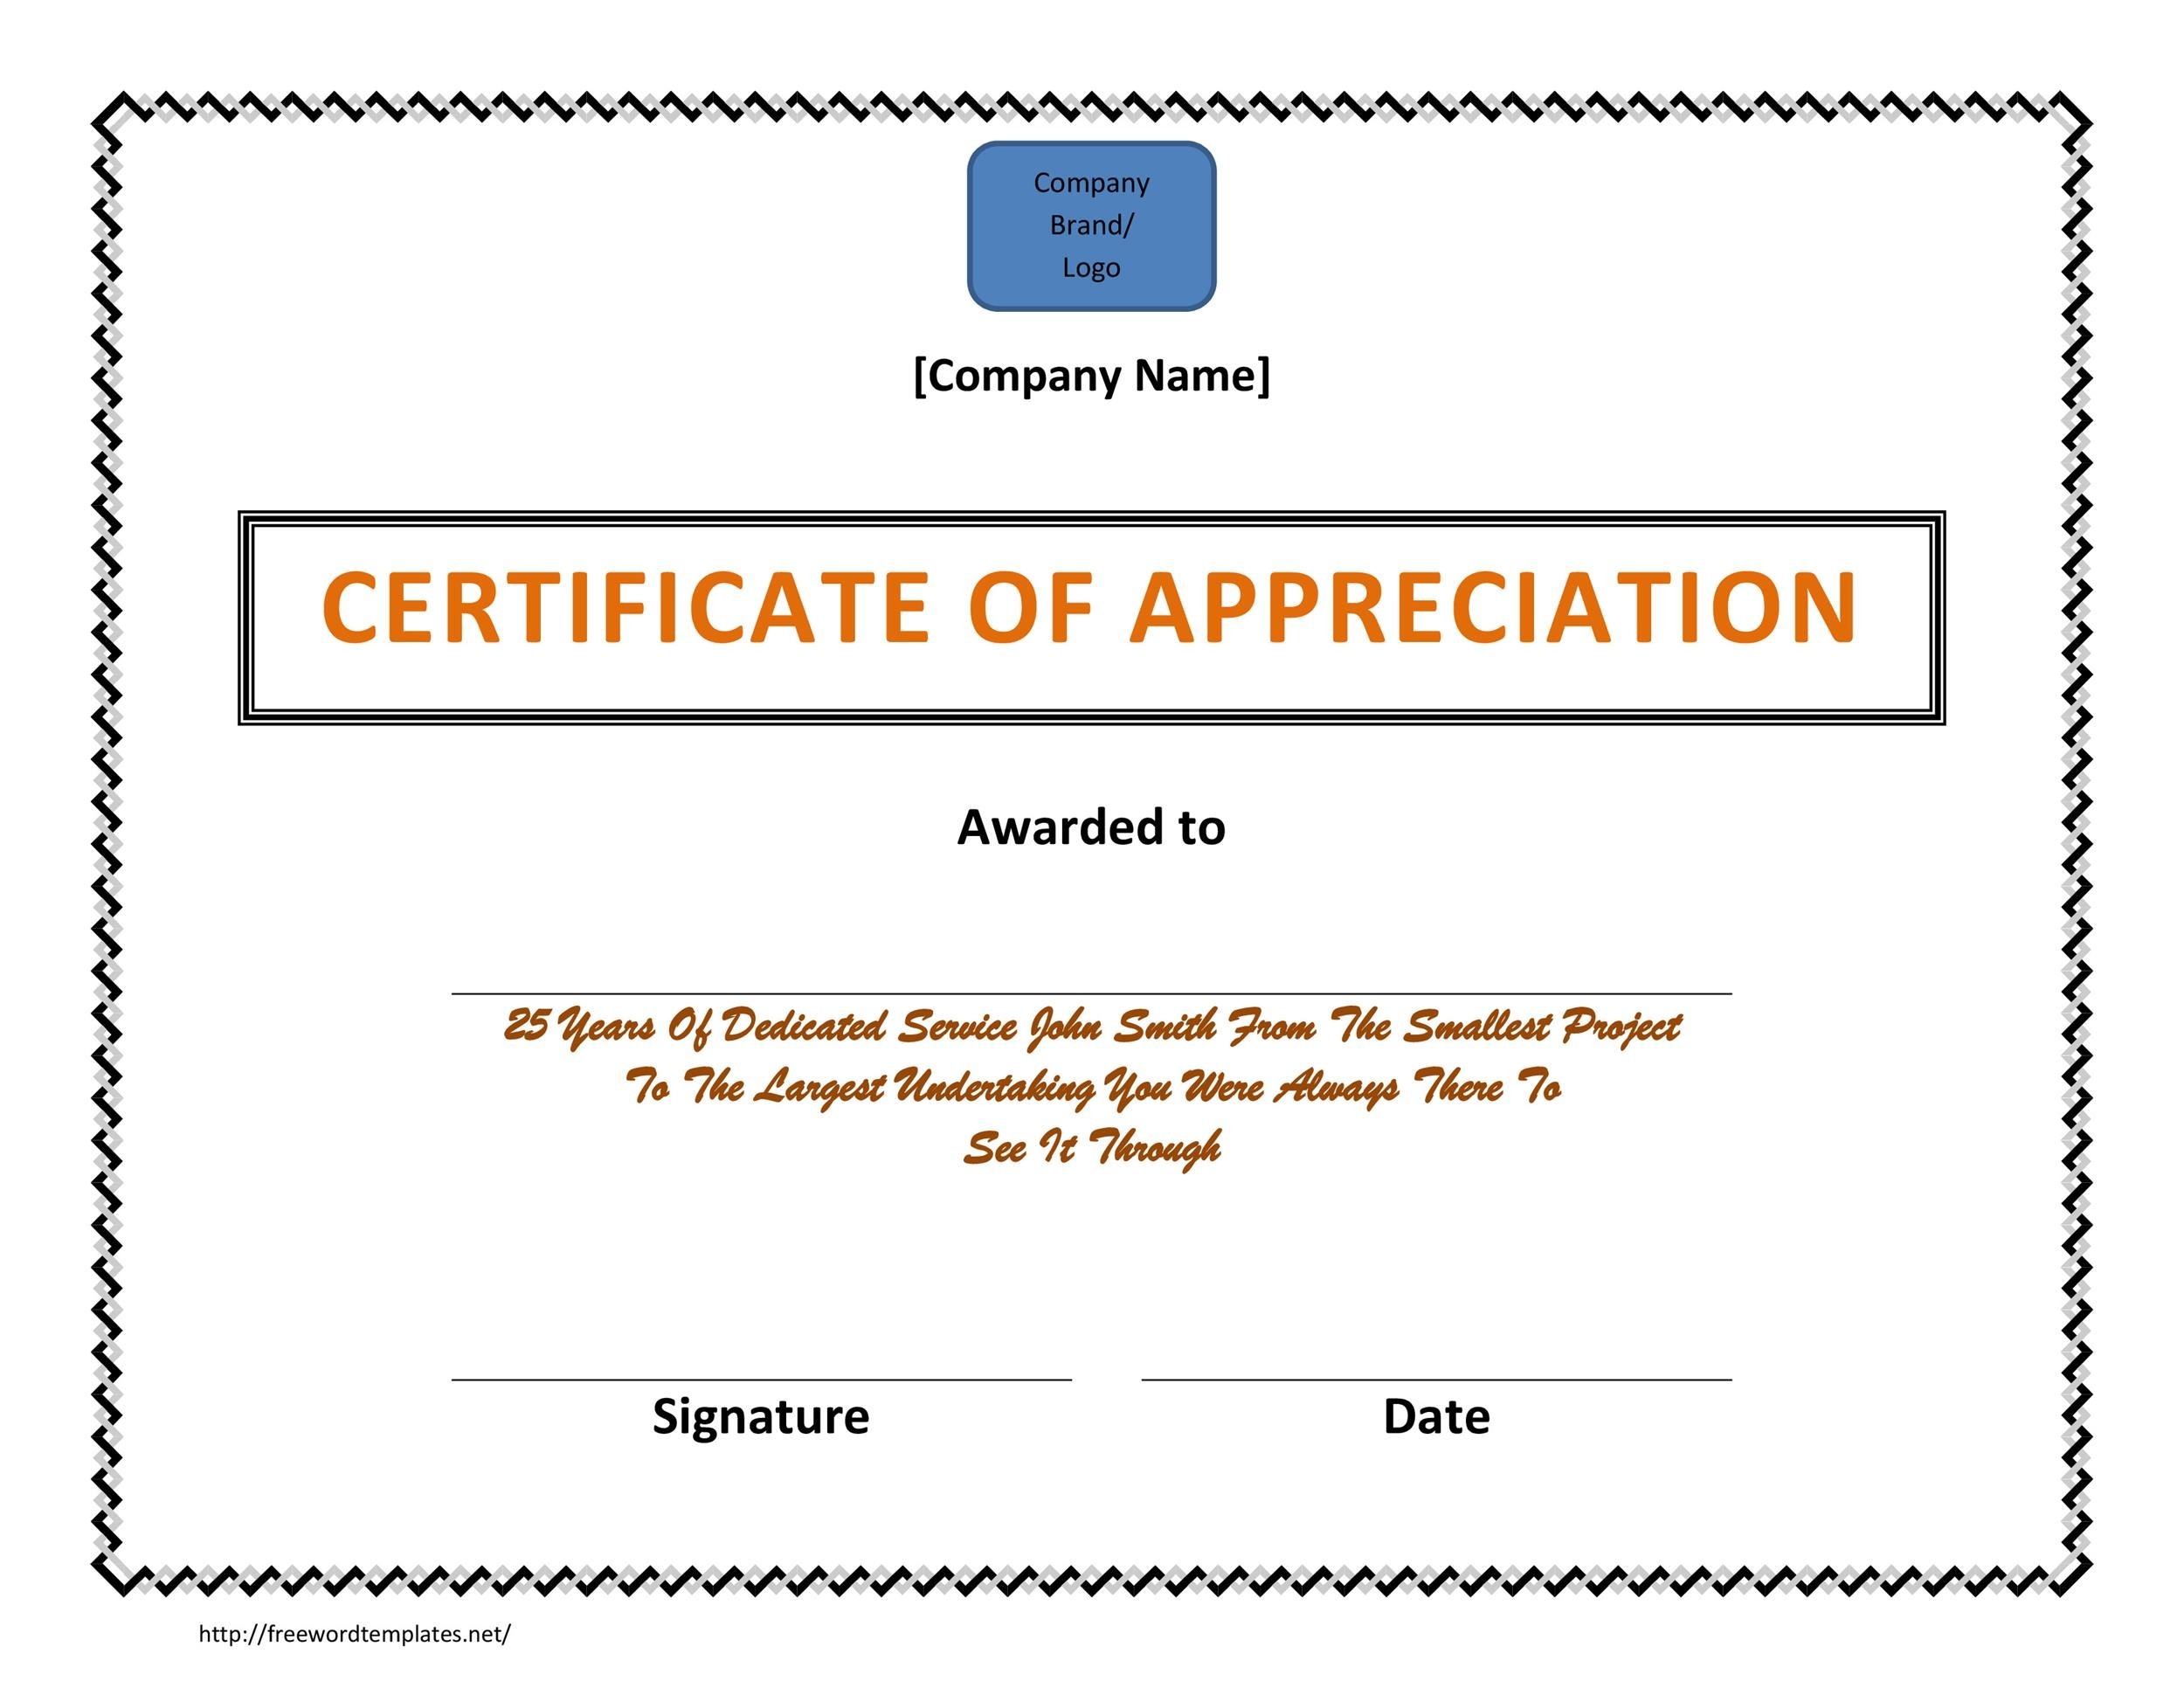 30 free certificate of appreciation templates and letters printable certificate of appreciation 05 yelopaper Image collections